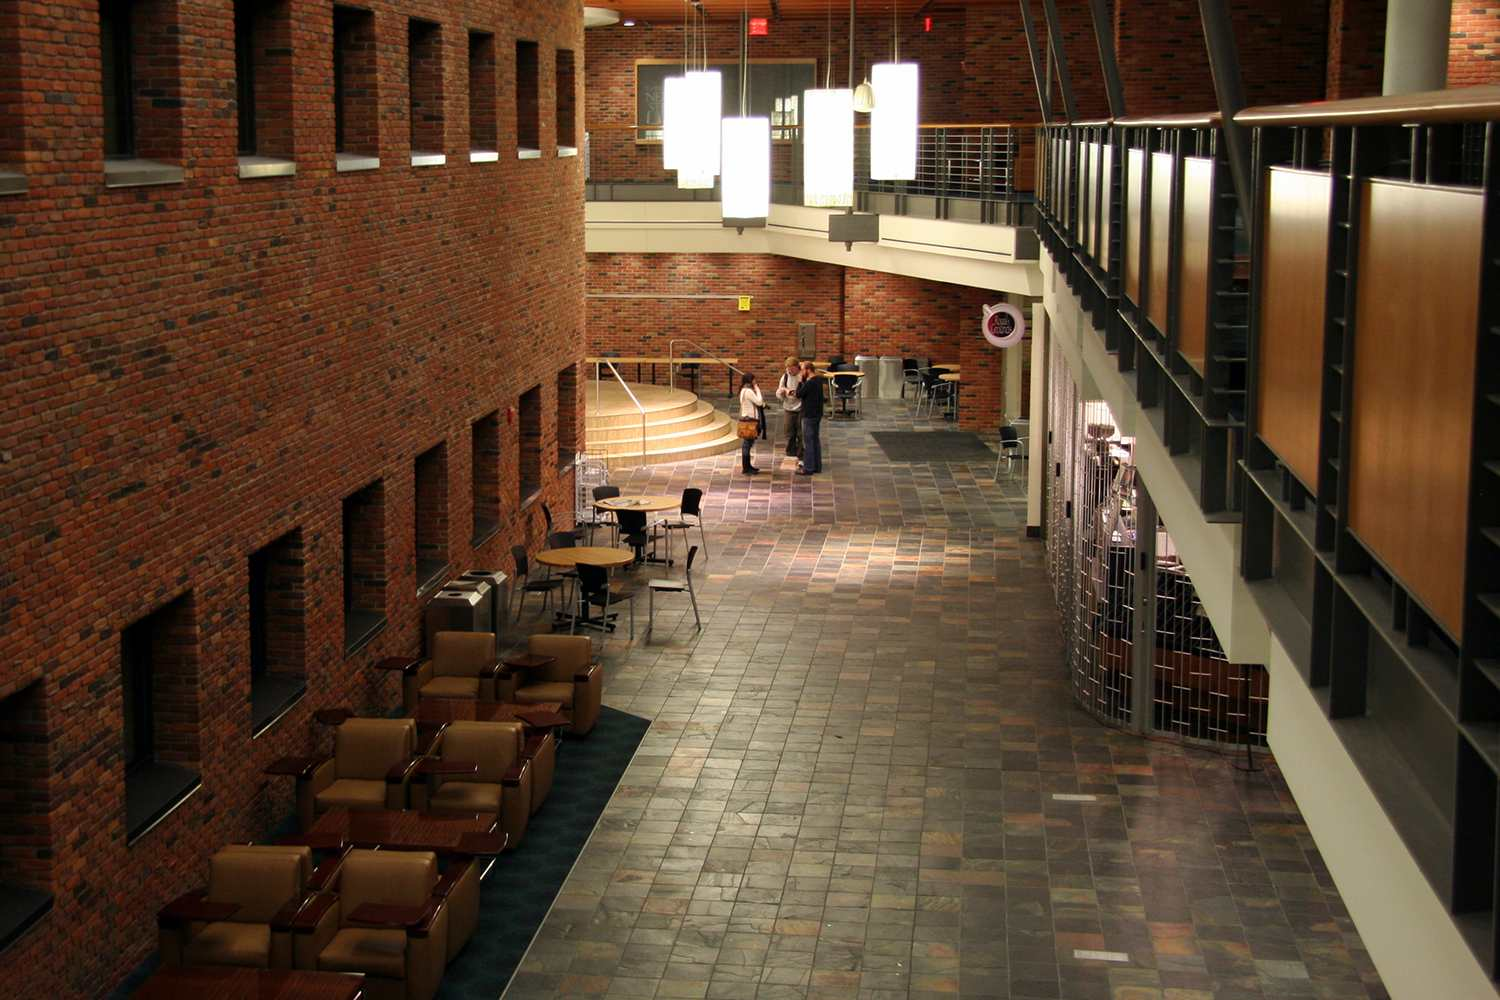 Royal Grounds Cafe and Student Lounge, Commons Building, Bethel University